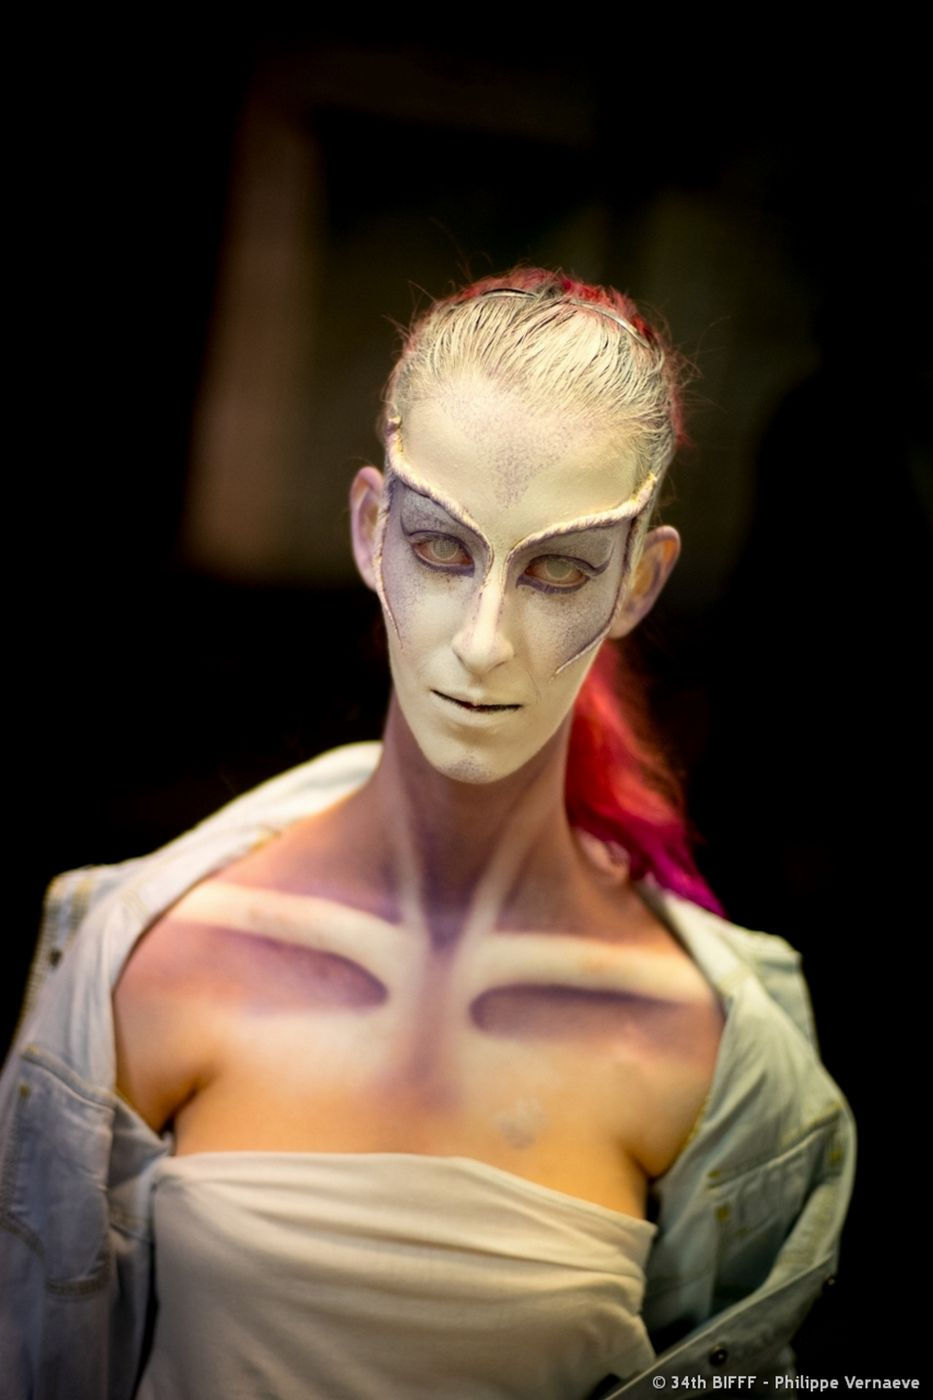 33rd Make Up Contest